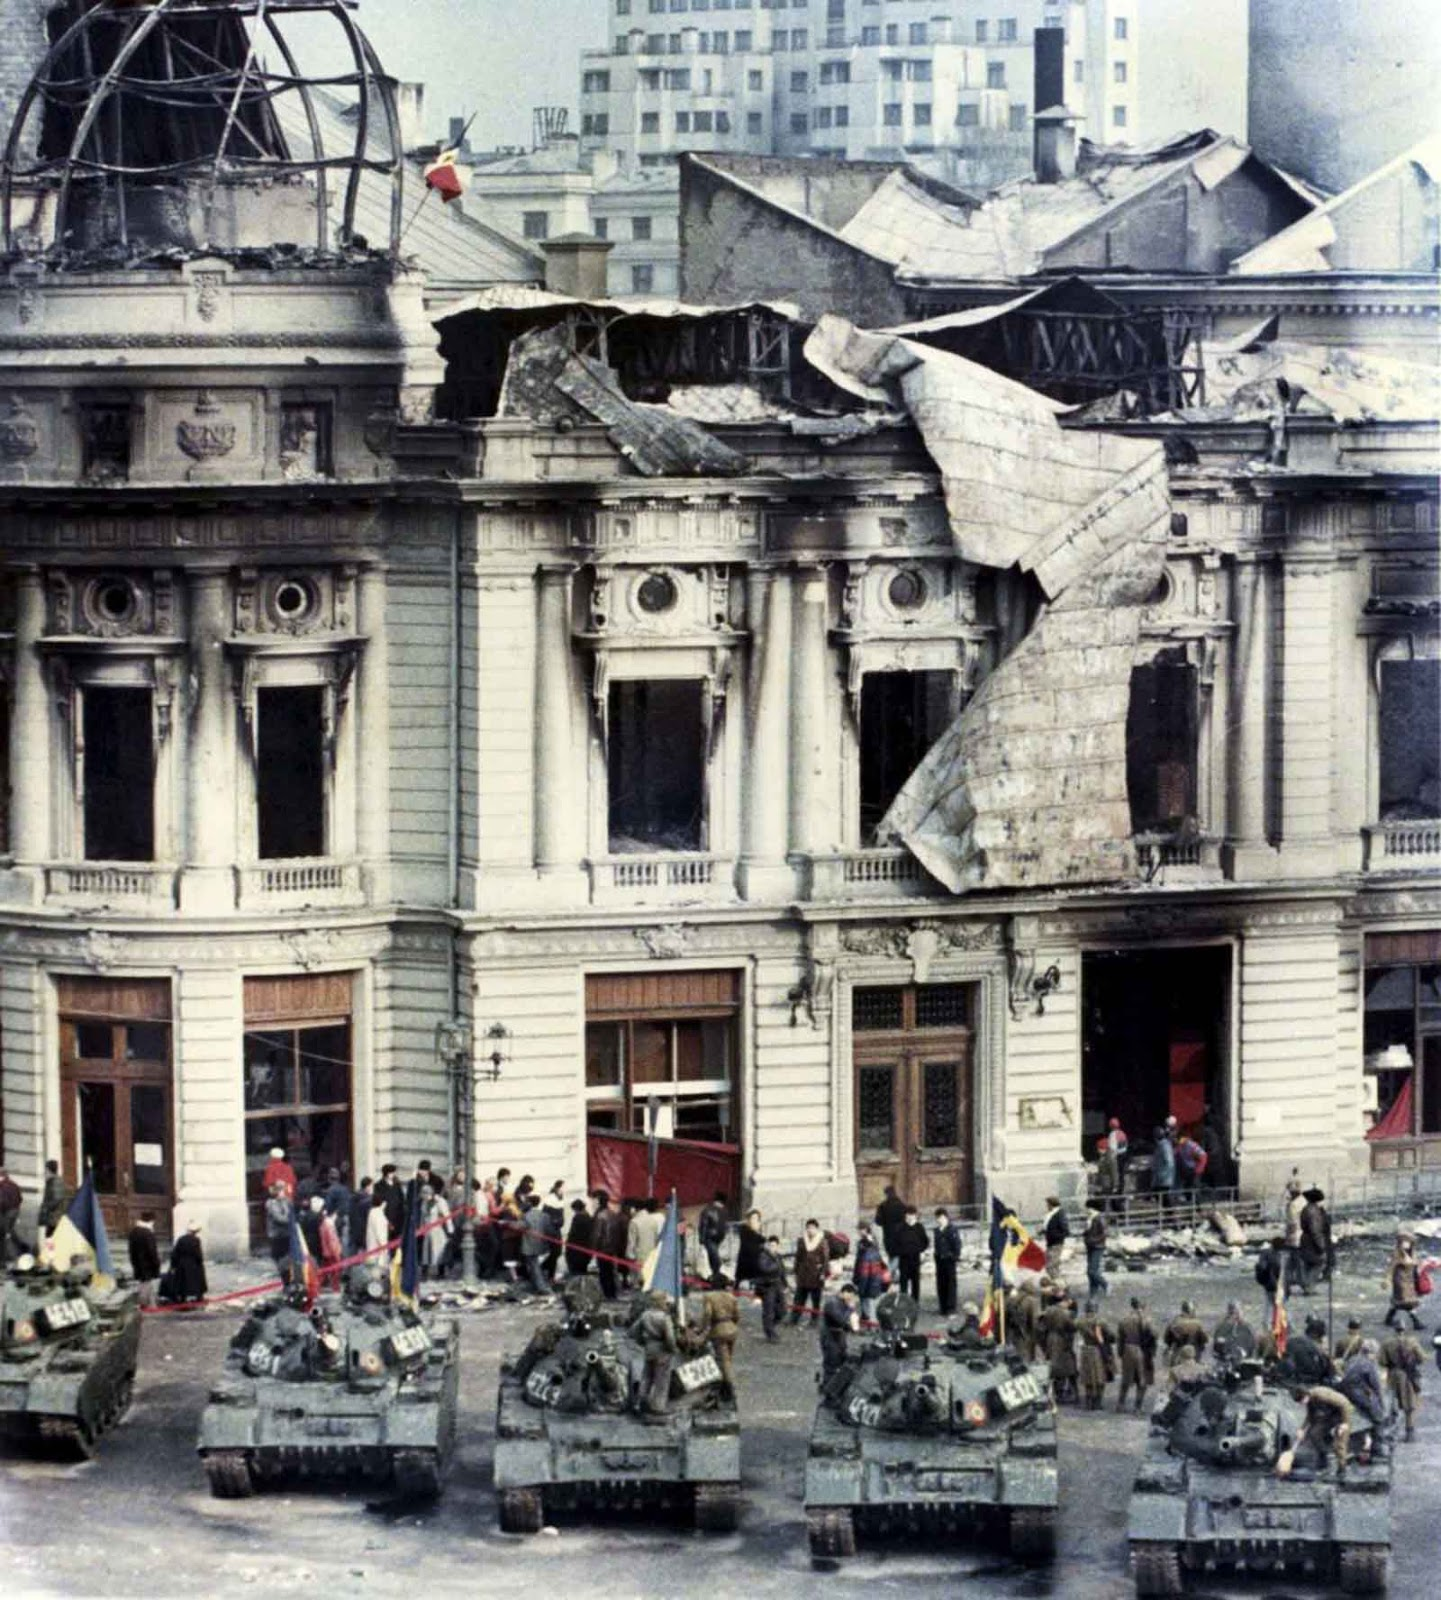 Civilians standing behind tanks after a battle between the army backed up by armed civilians and pro-Ceausescu supporters in Bucharest.